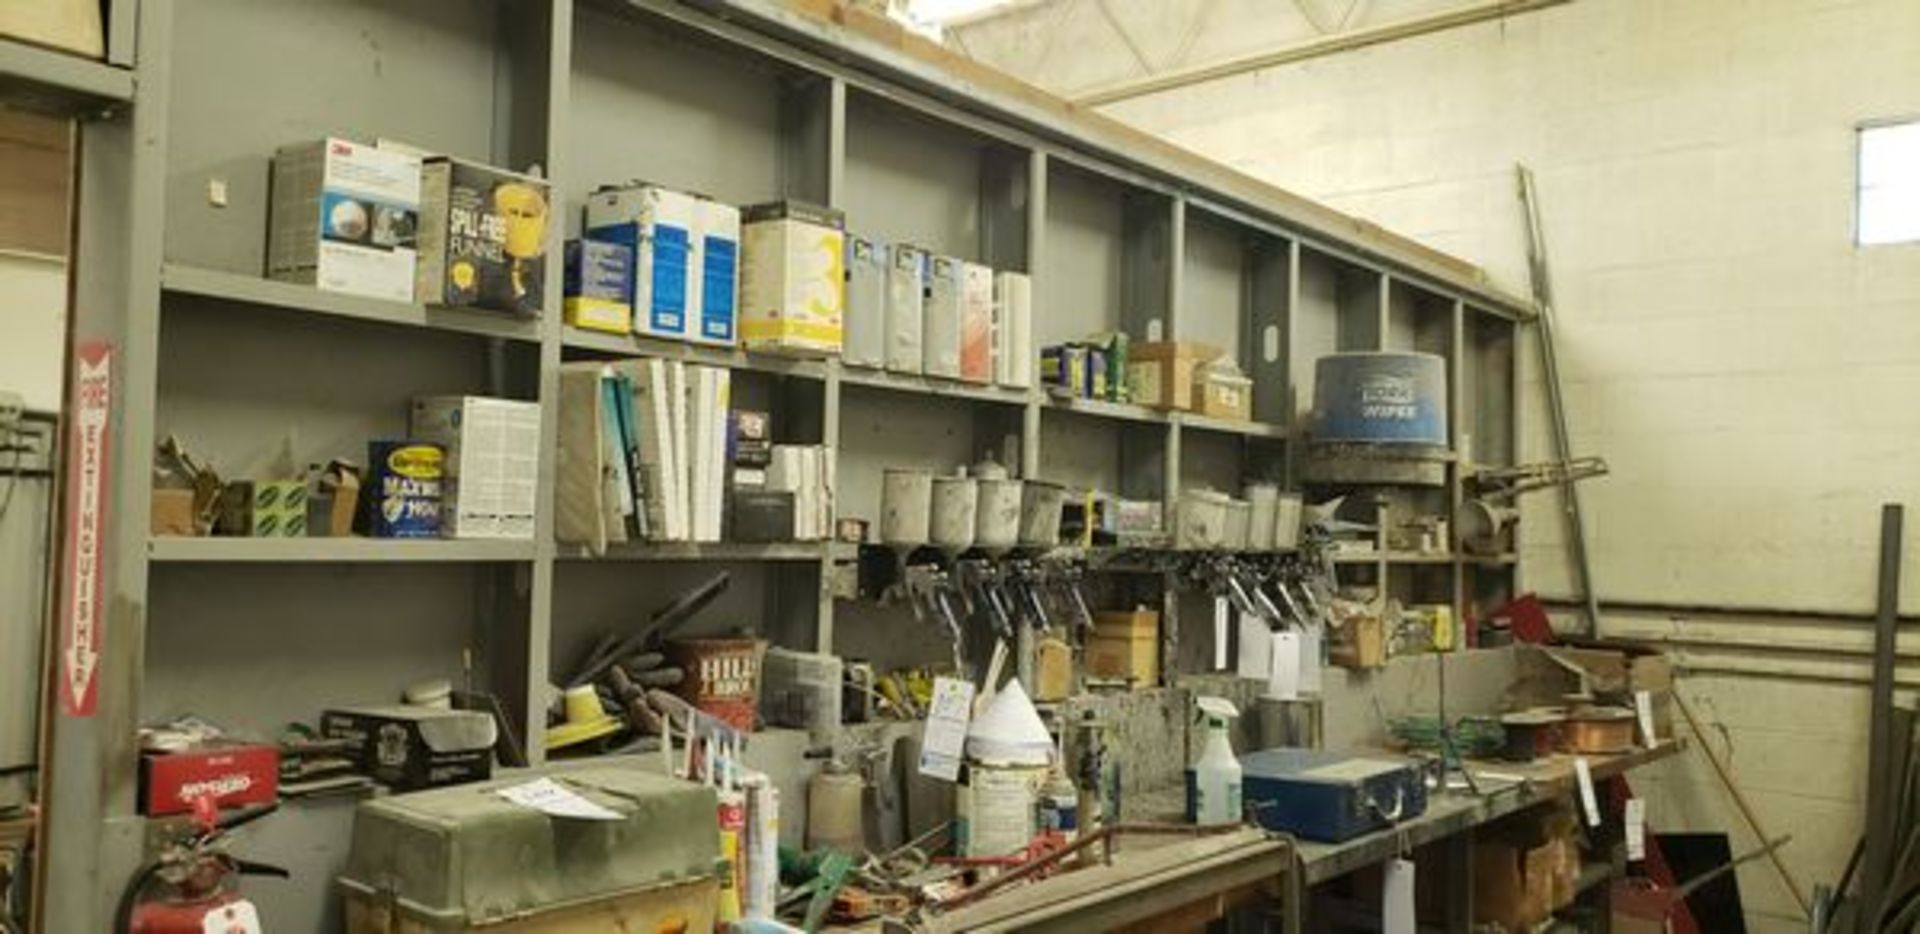 LOT OF PAINTING ITEMS ON LEFT TABLE, TOP AND BACK SHELF (TAGGED SPRAY GUNS AND OTHER TAGGED ITEMS AR